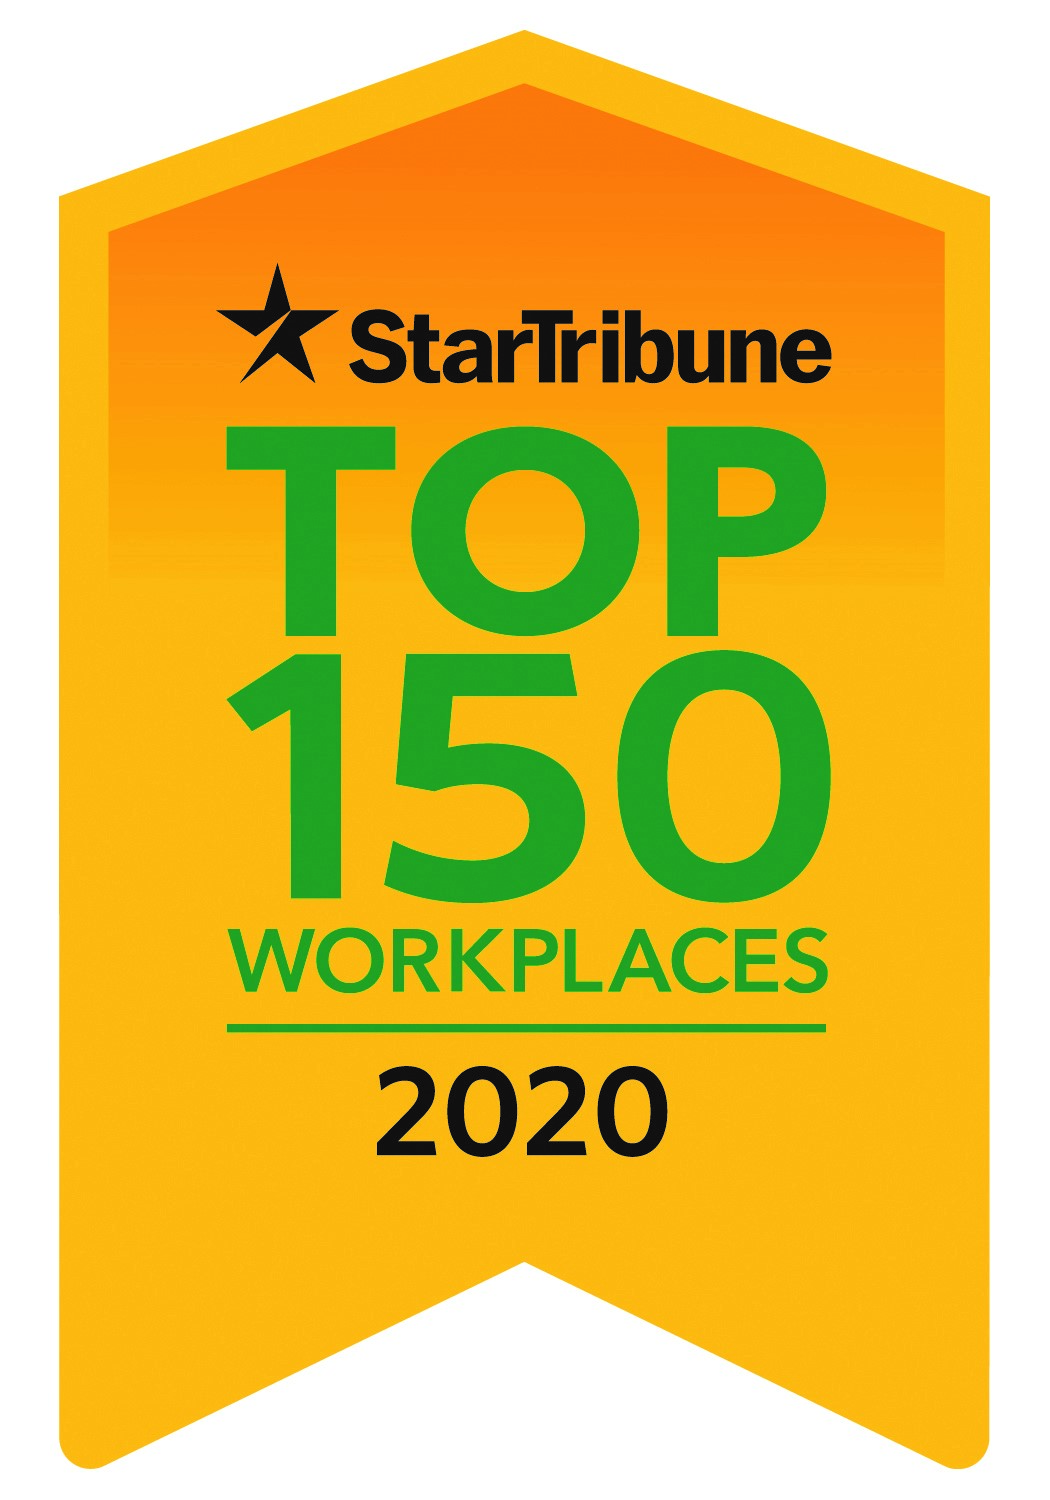 Top 150 Workplaces